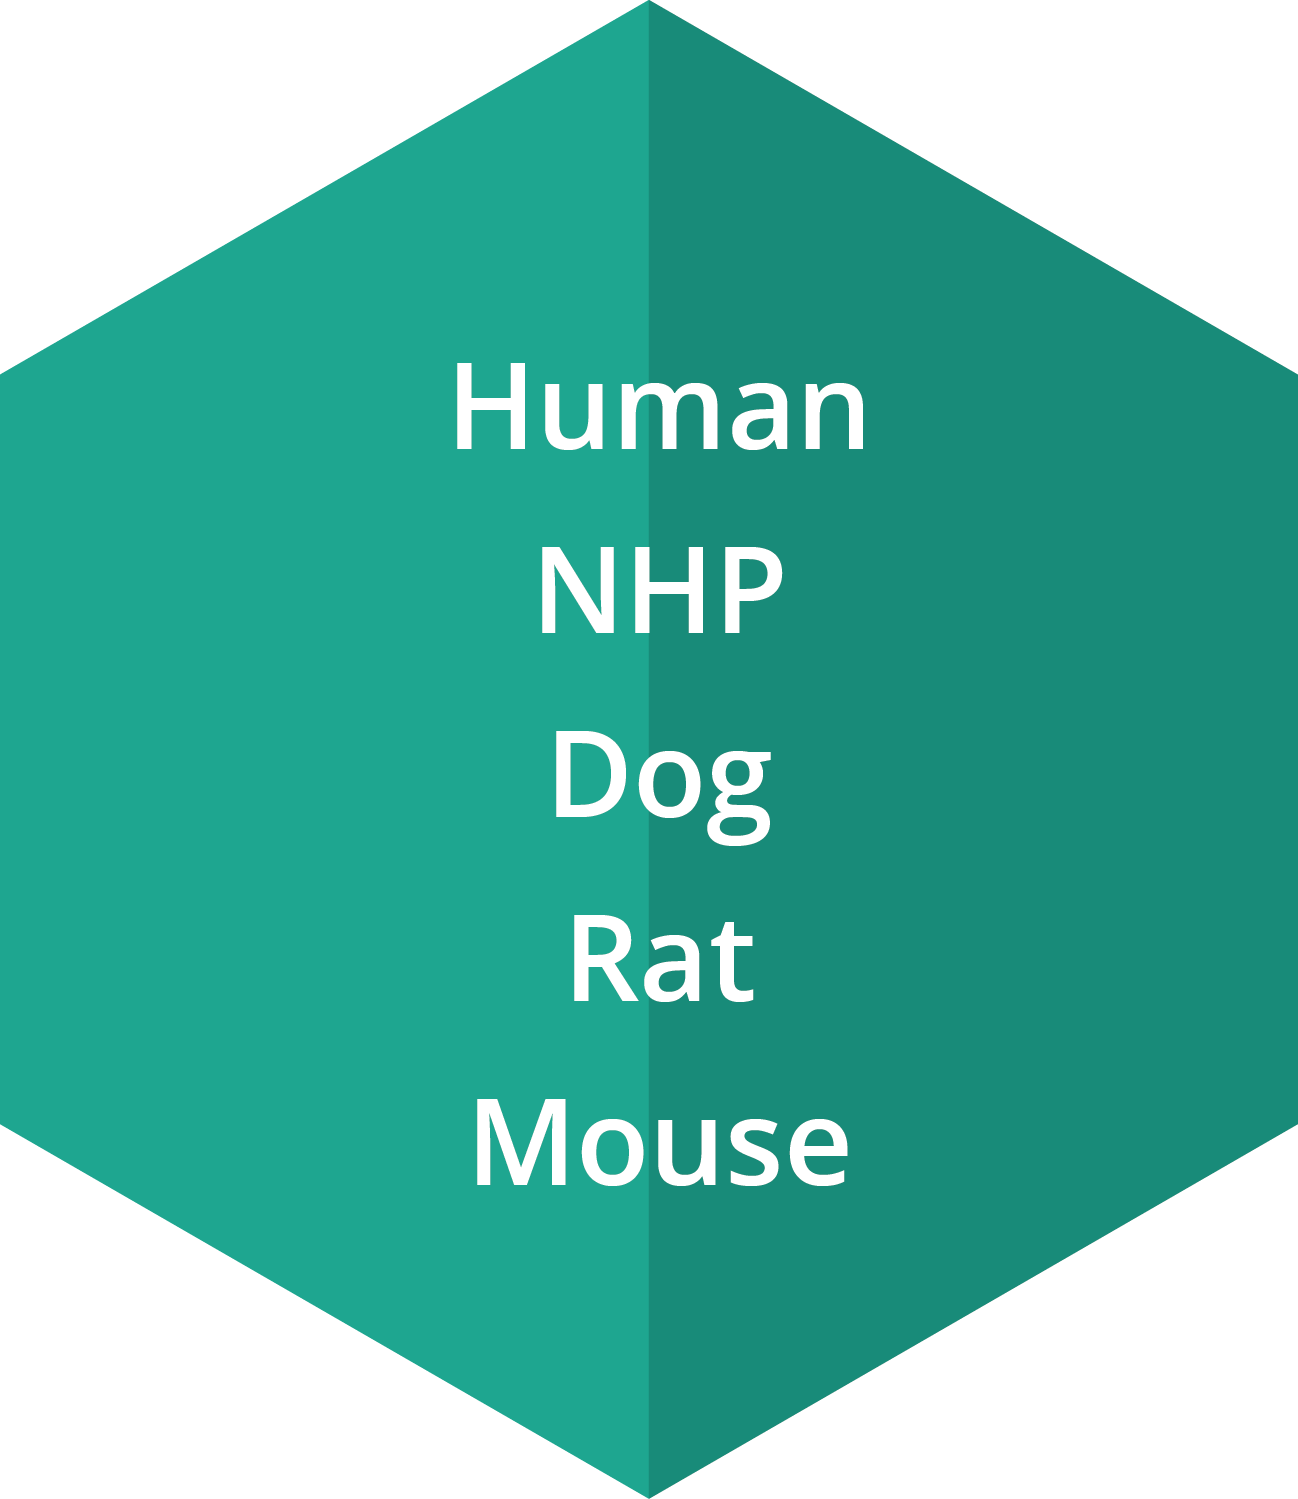 CFU-GM can be cultured from bone marrow for a variety of species that include human, non-human primate, dog, rat and mouse.